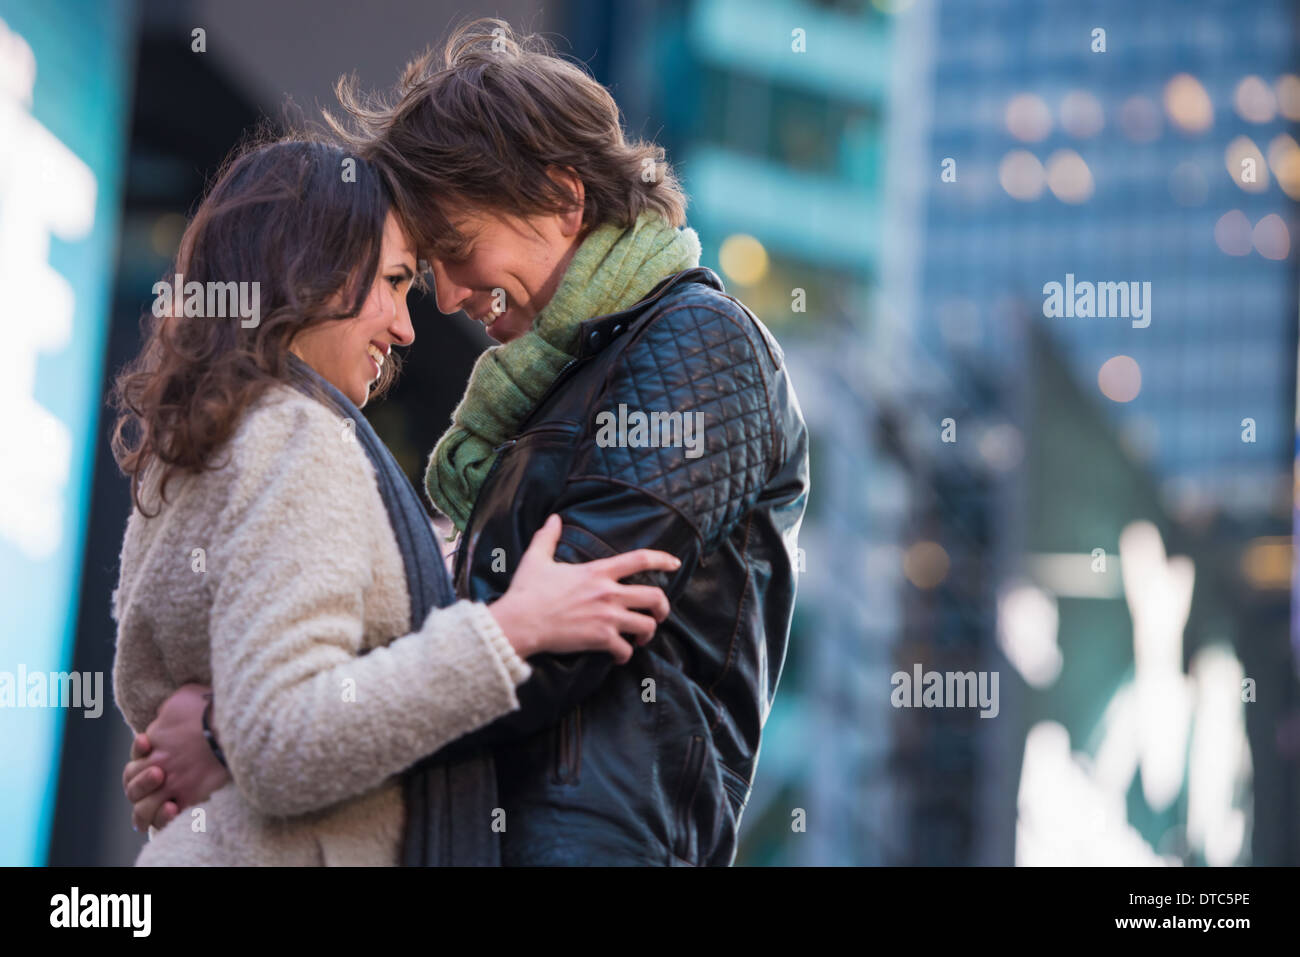 Young romantic couple on vacation, New York City, USA - Stock Image